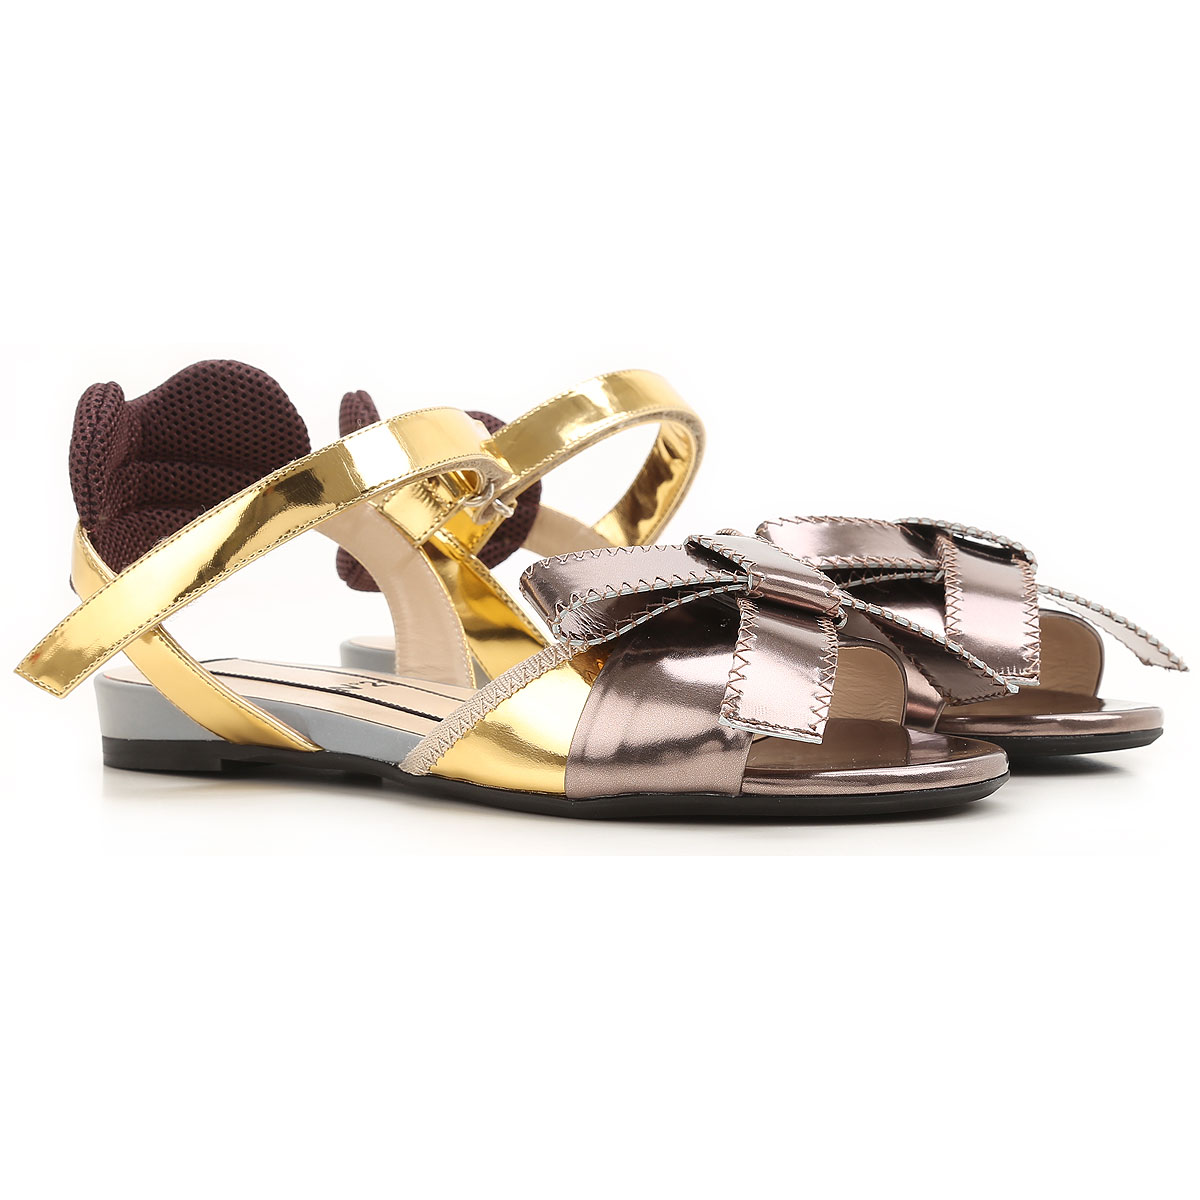 NO 21 Sandals for Women On Sale in Outlet, Gold, Patent, 2019, 5 7